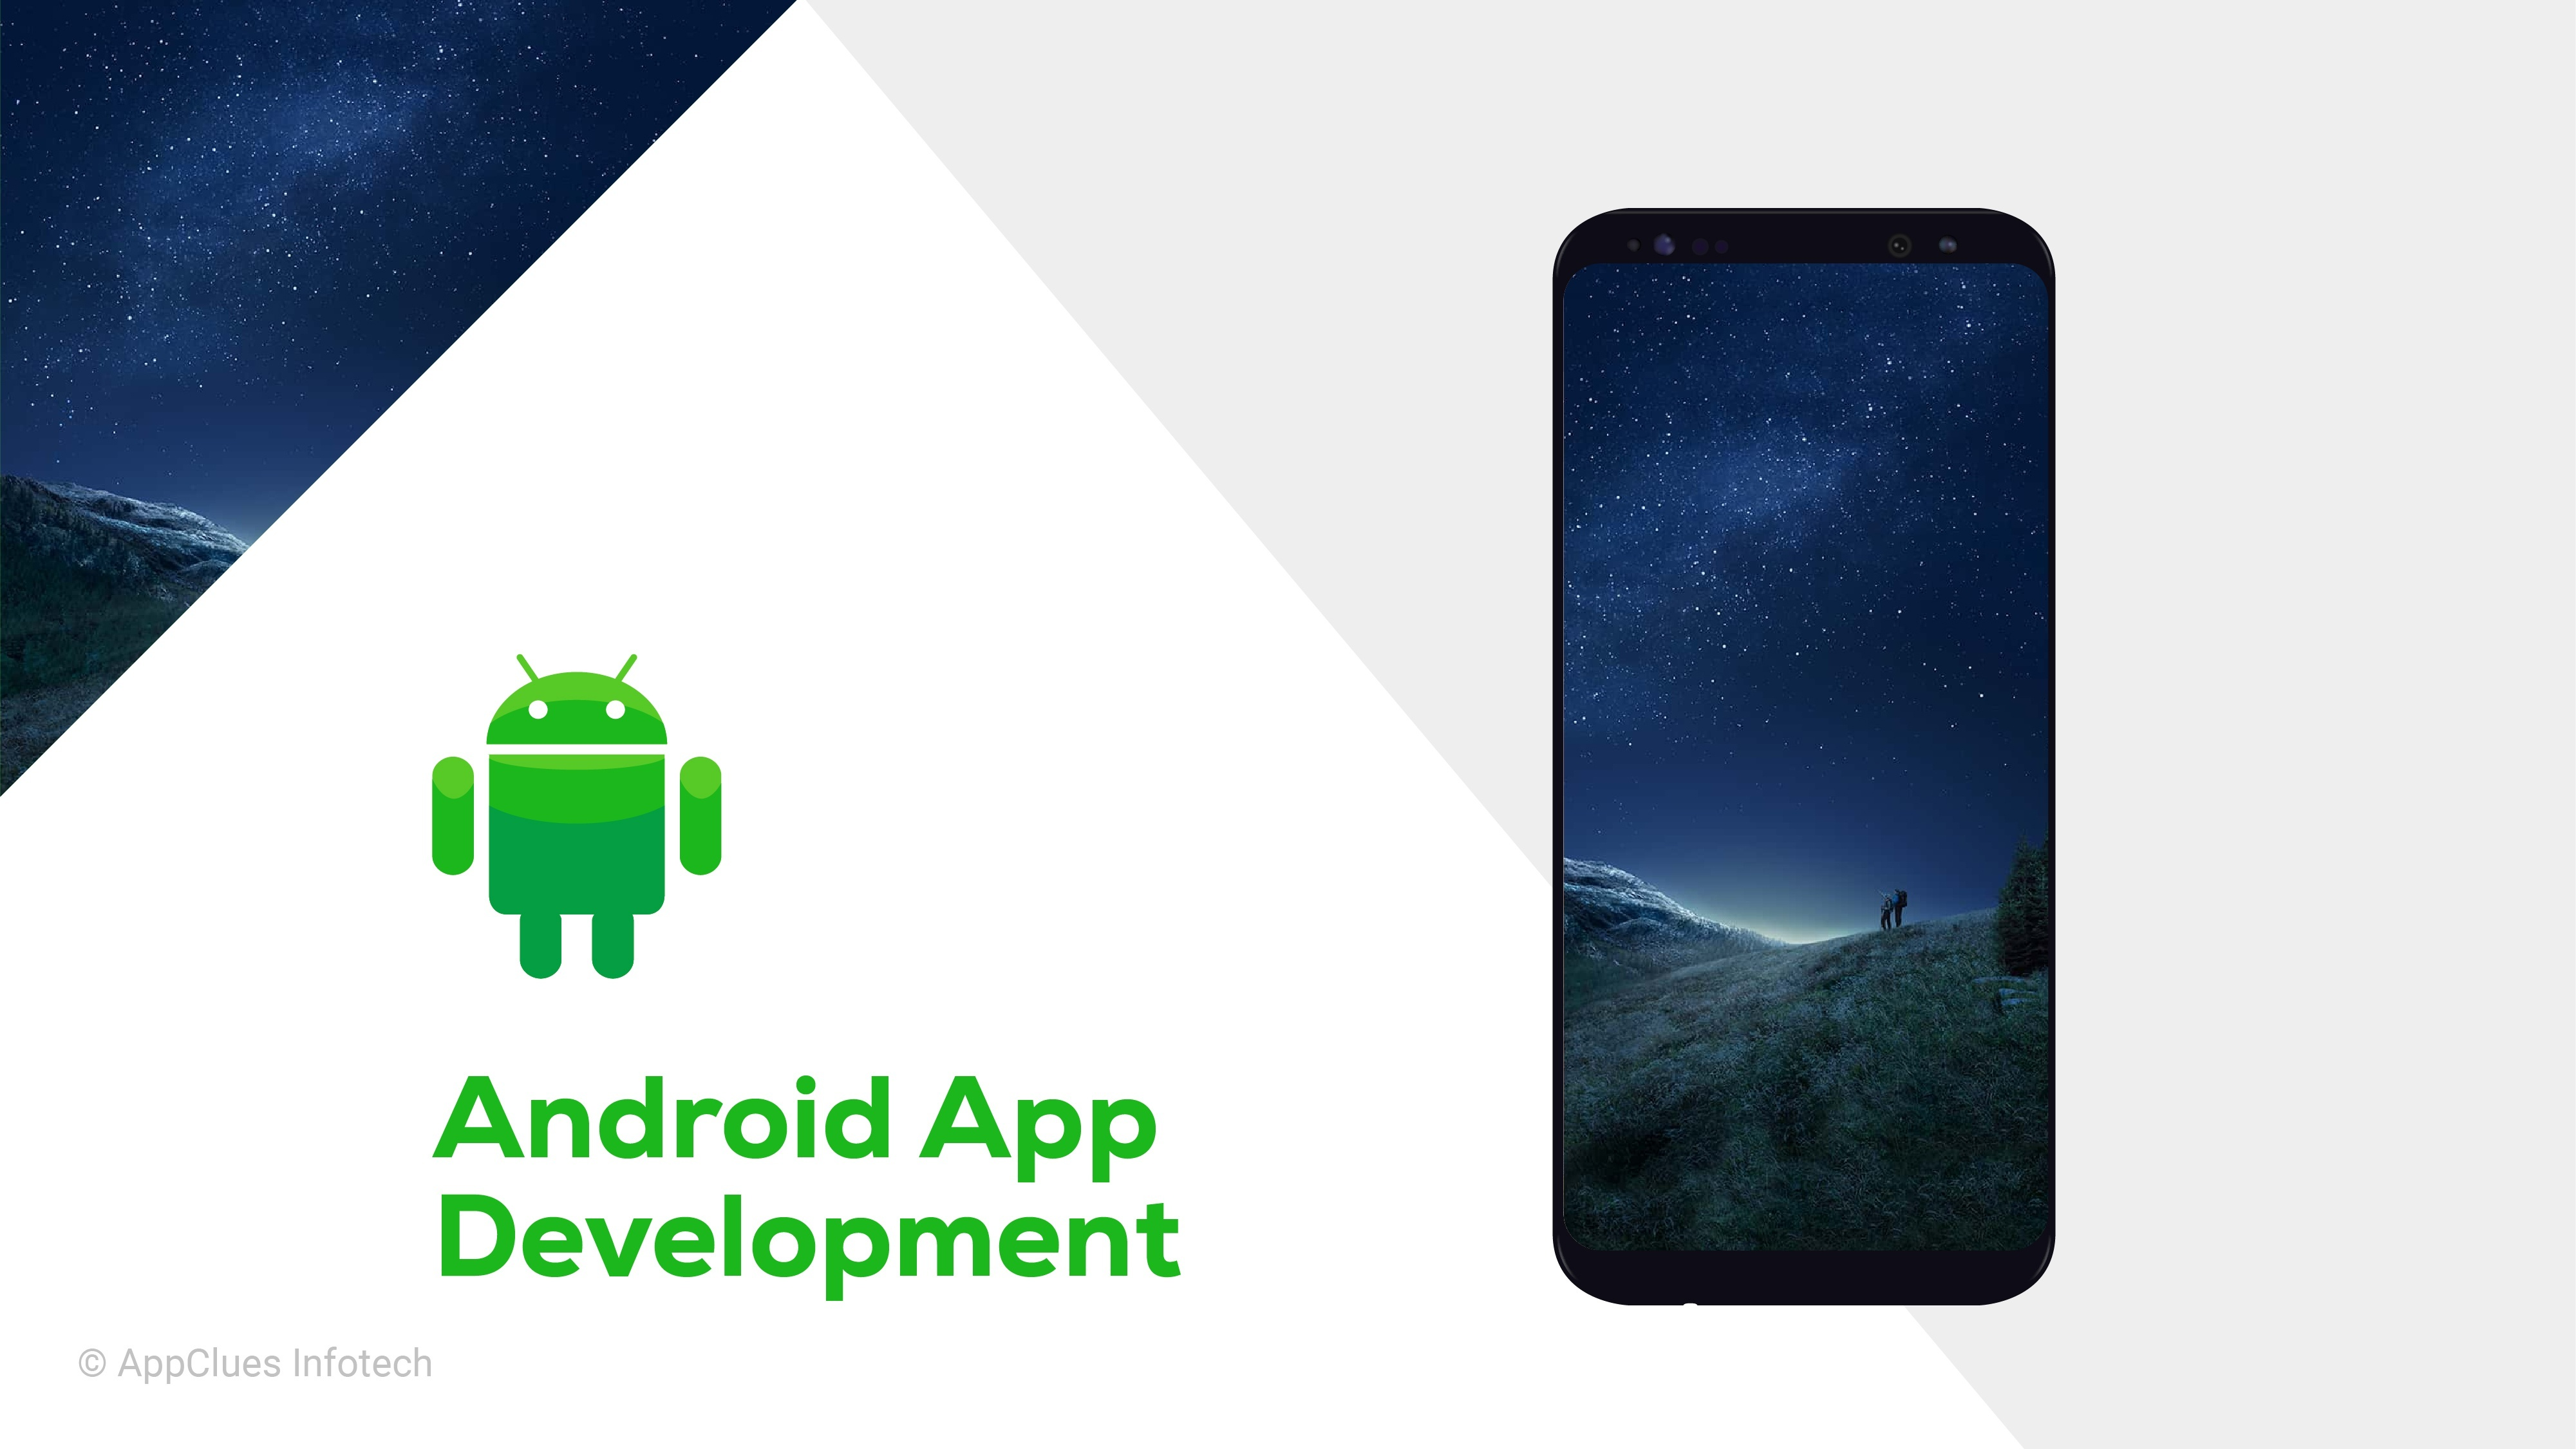 What is the cost of Android app development for an institution